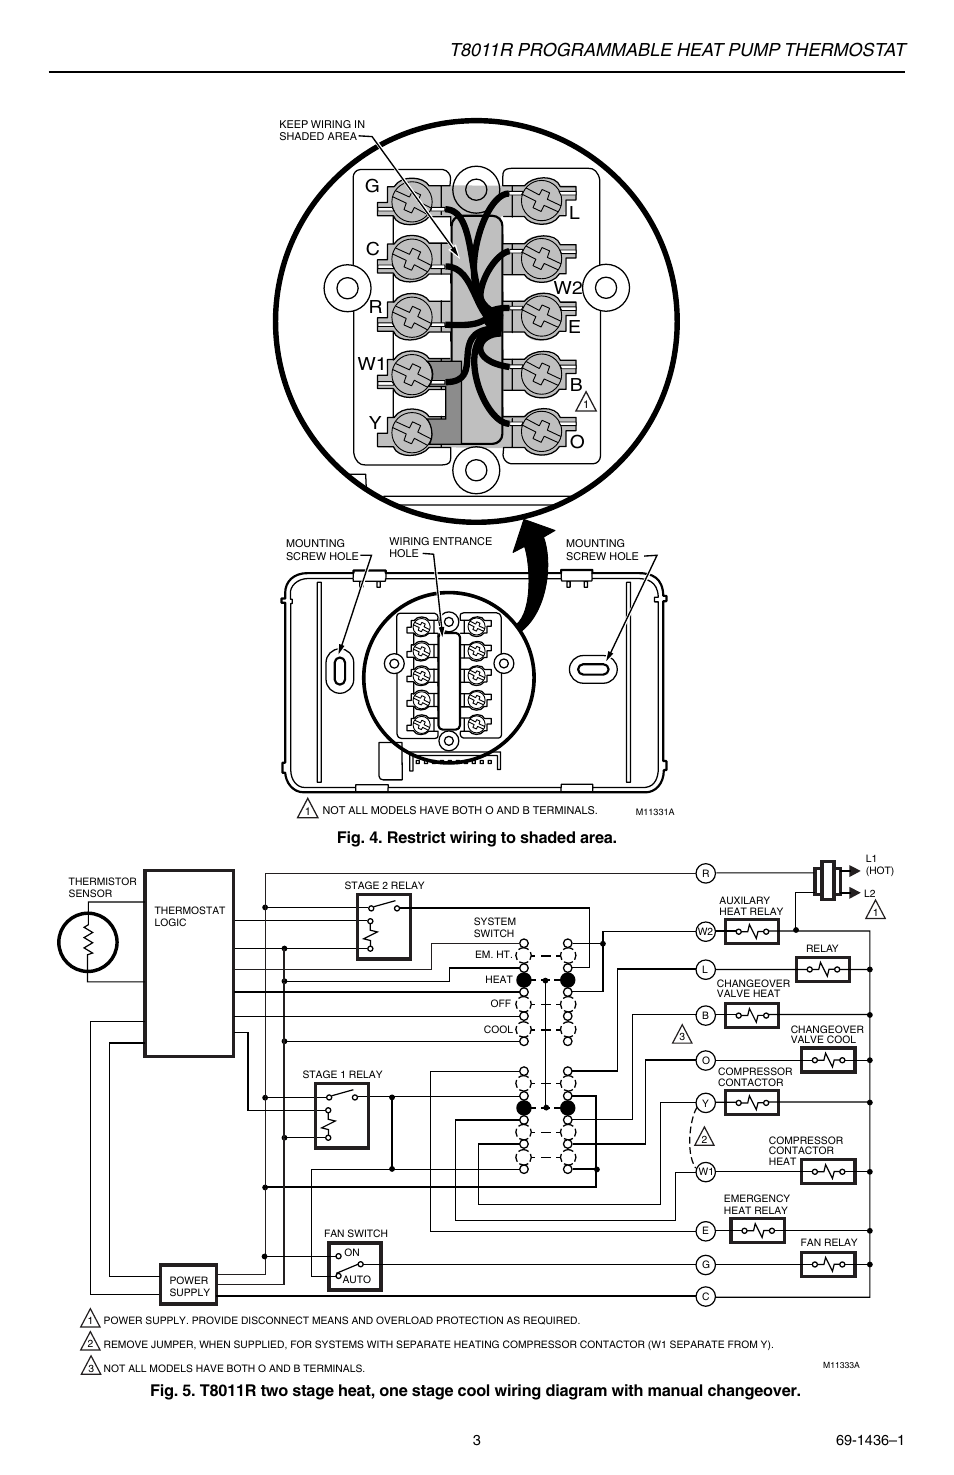 honeywell pump wiring diagram